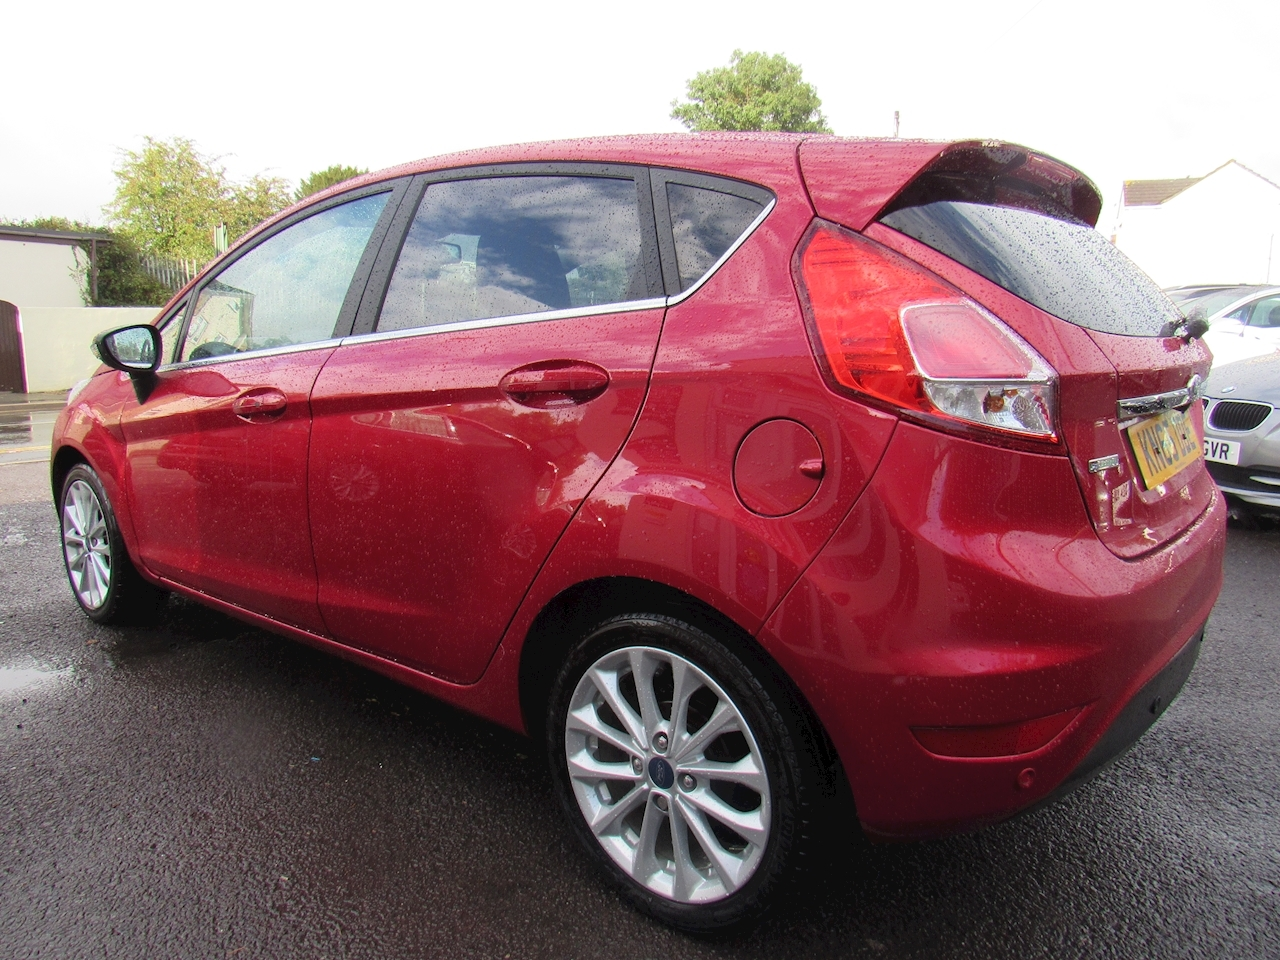 Ford Fiesta Titanium X Hatchback 1.0 Manual Petrol